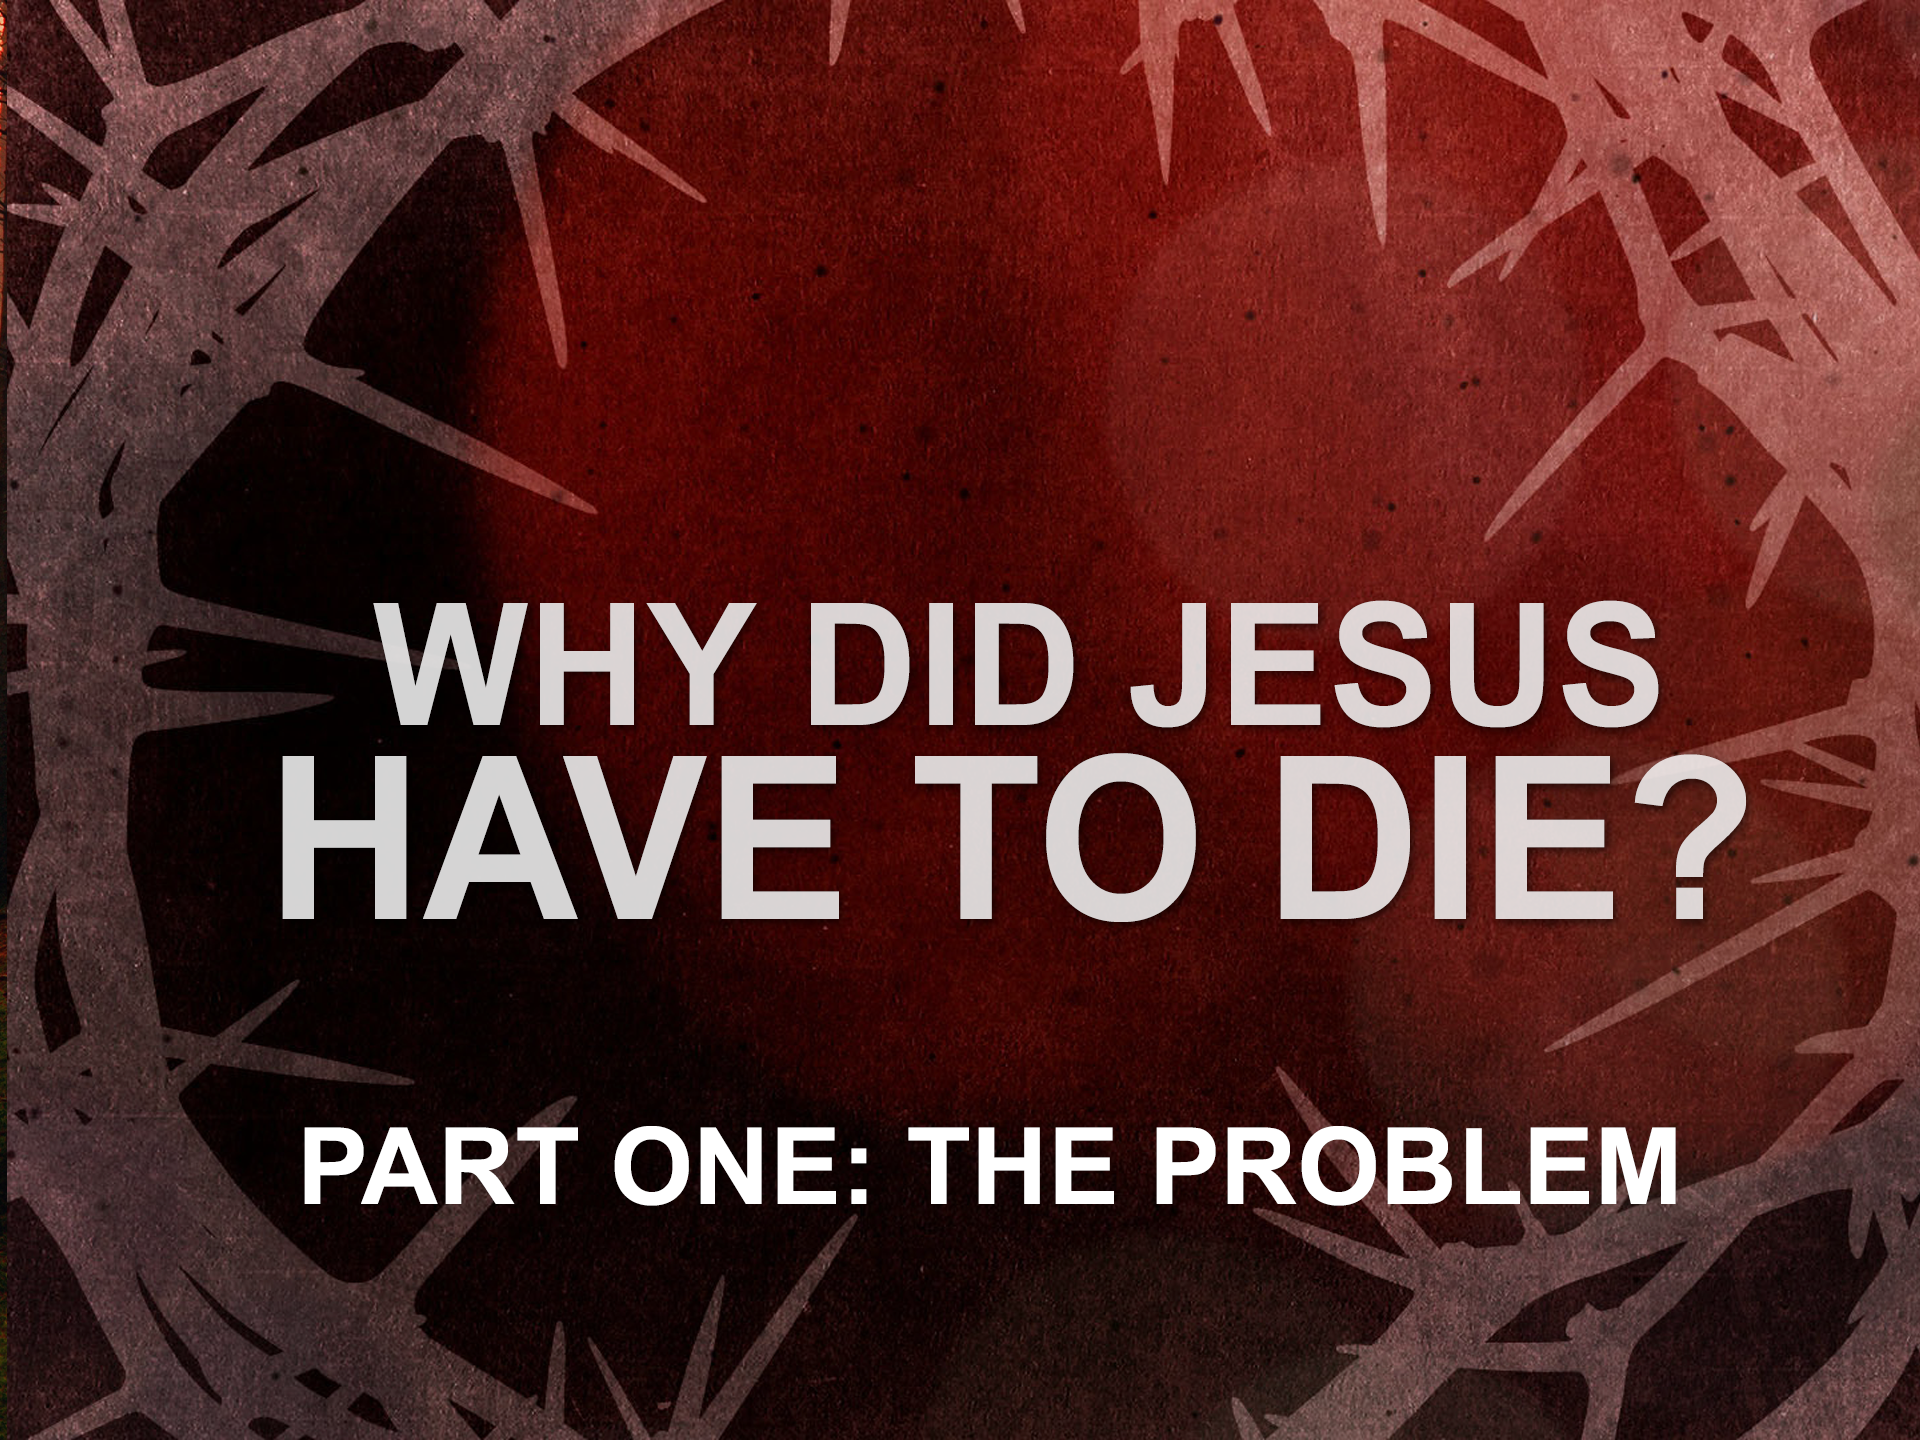 040719 why did jesus have to die pt1 the problem.png